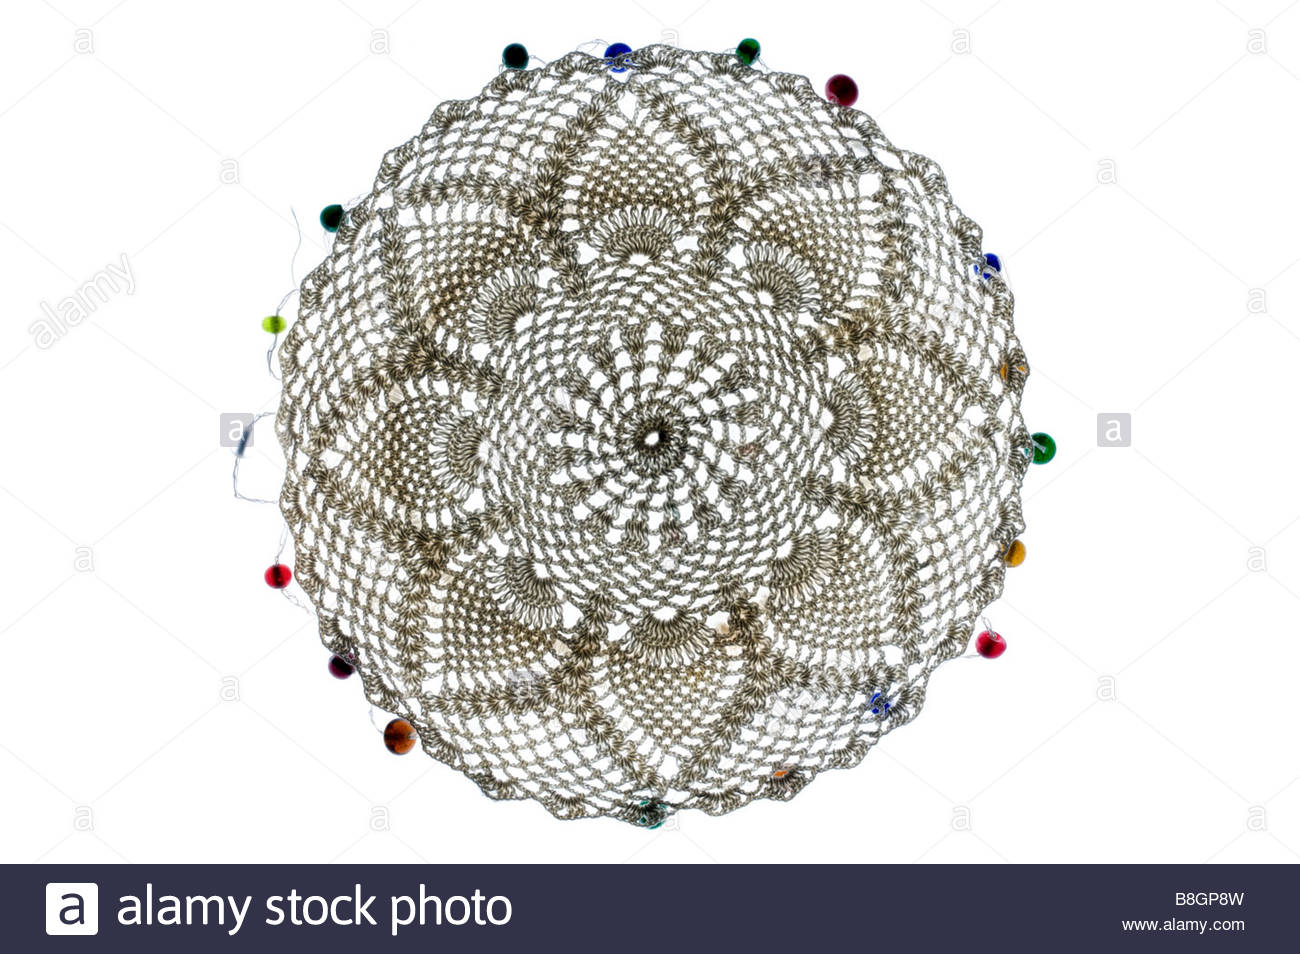 decorative doily made from lace - Stock Image